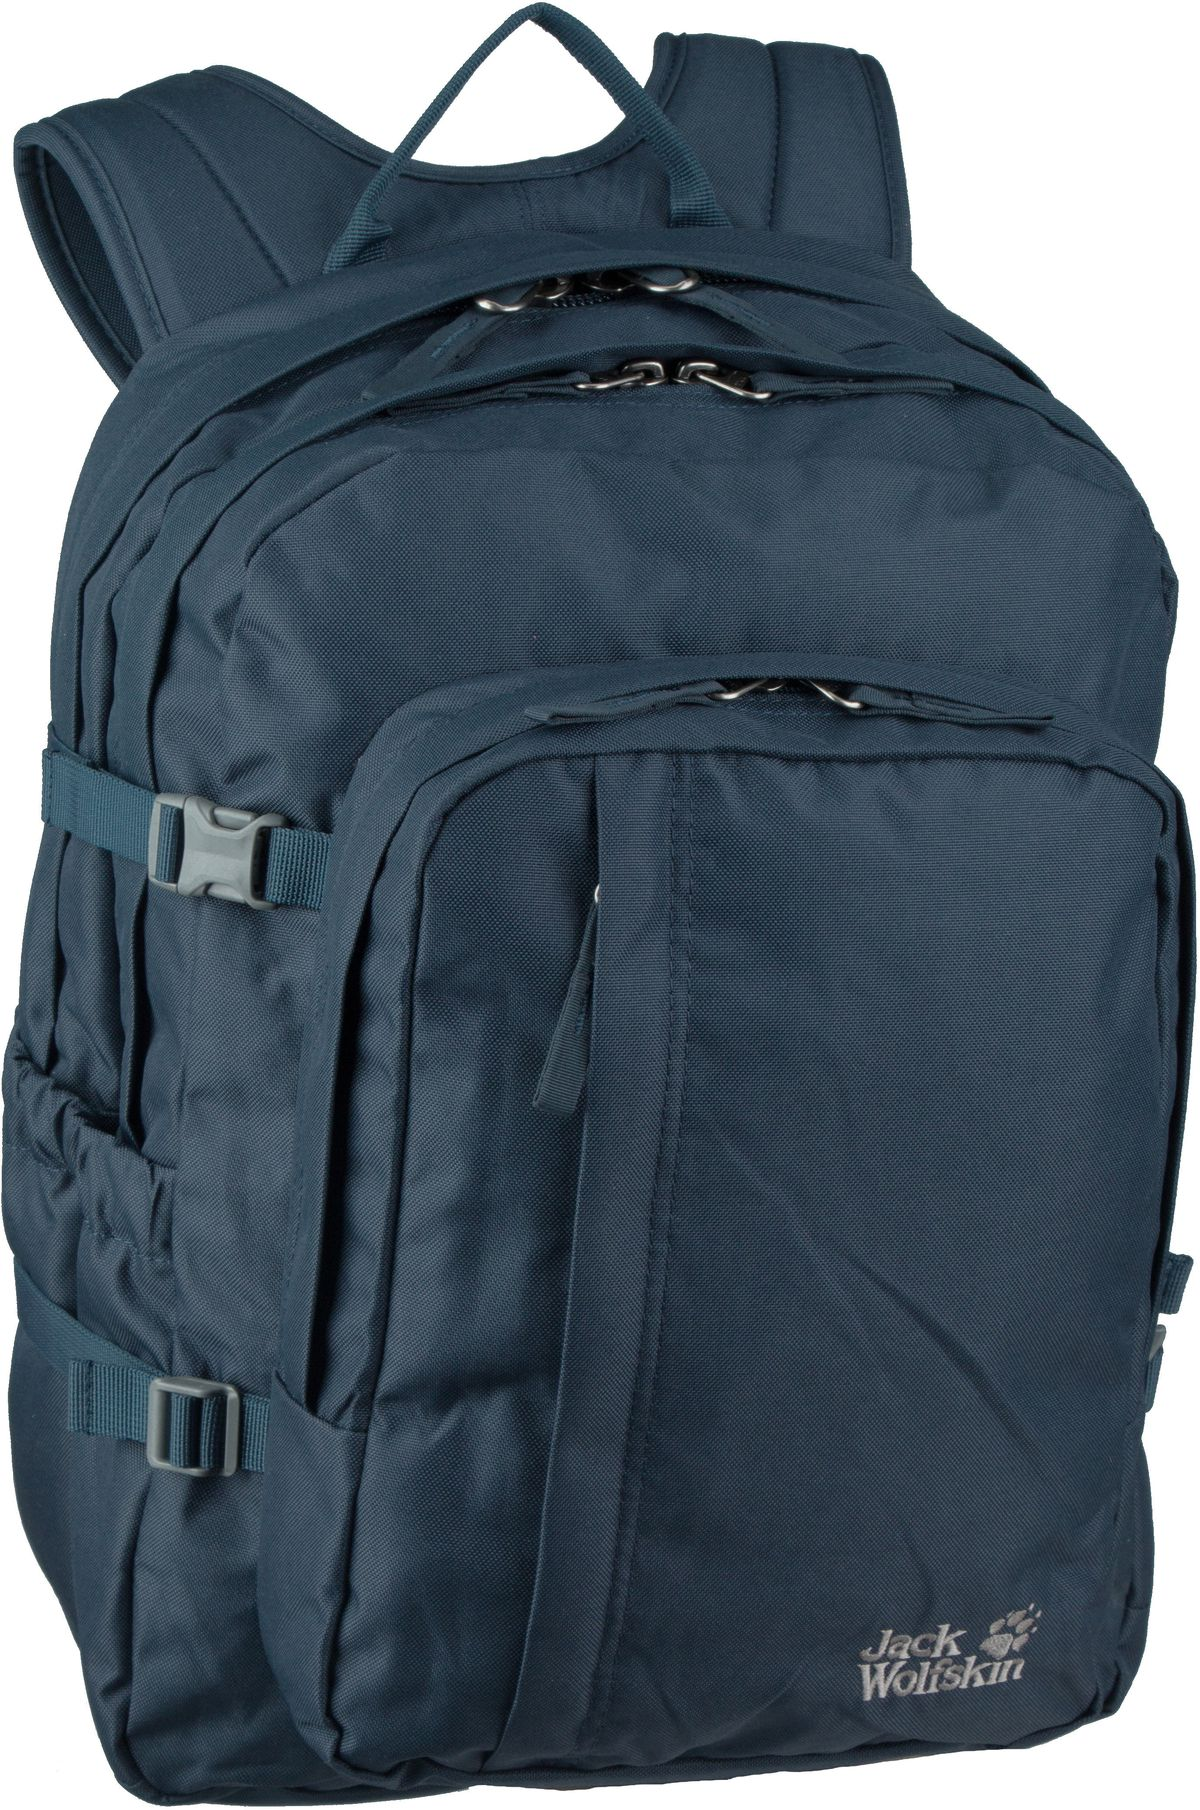 Rucksack / Daypack Berkeley NEW Night Blue (30 Liter)